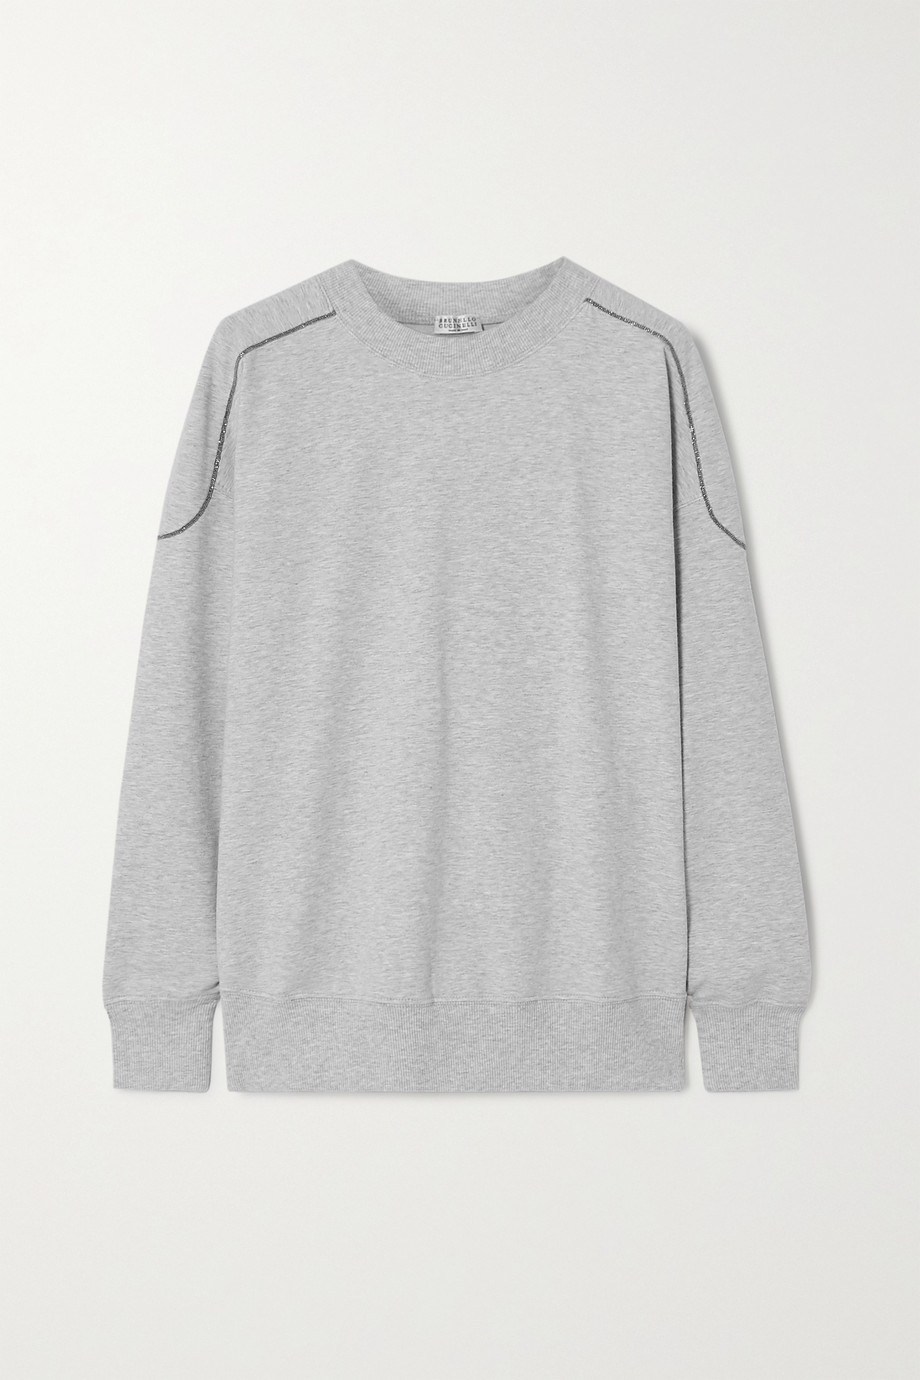 Brunello Cucinelli Bead-embellished mélange stretch-cotton jersey sweatshirt